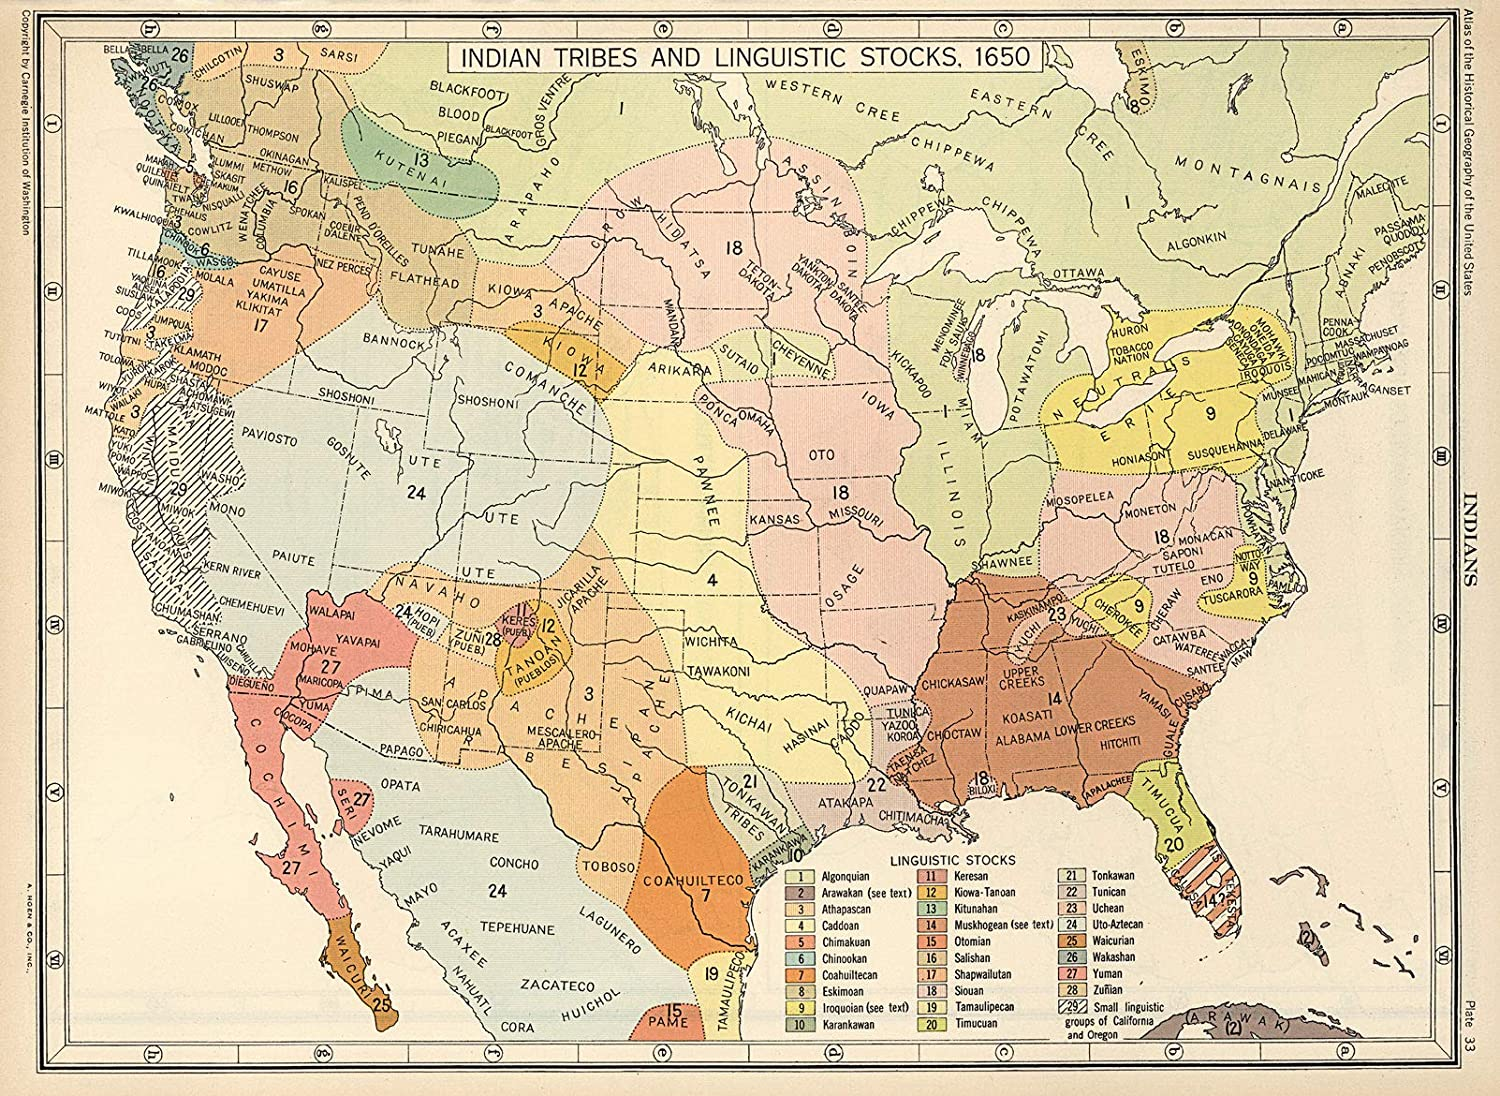 Native American Us Map Amazon.com: 🔵 1650 US Map Native American Indian Tribes Languages